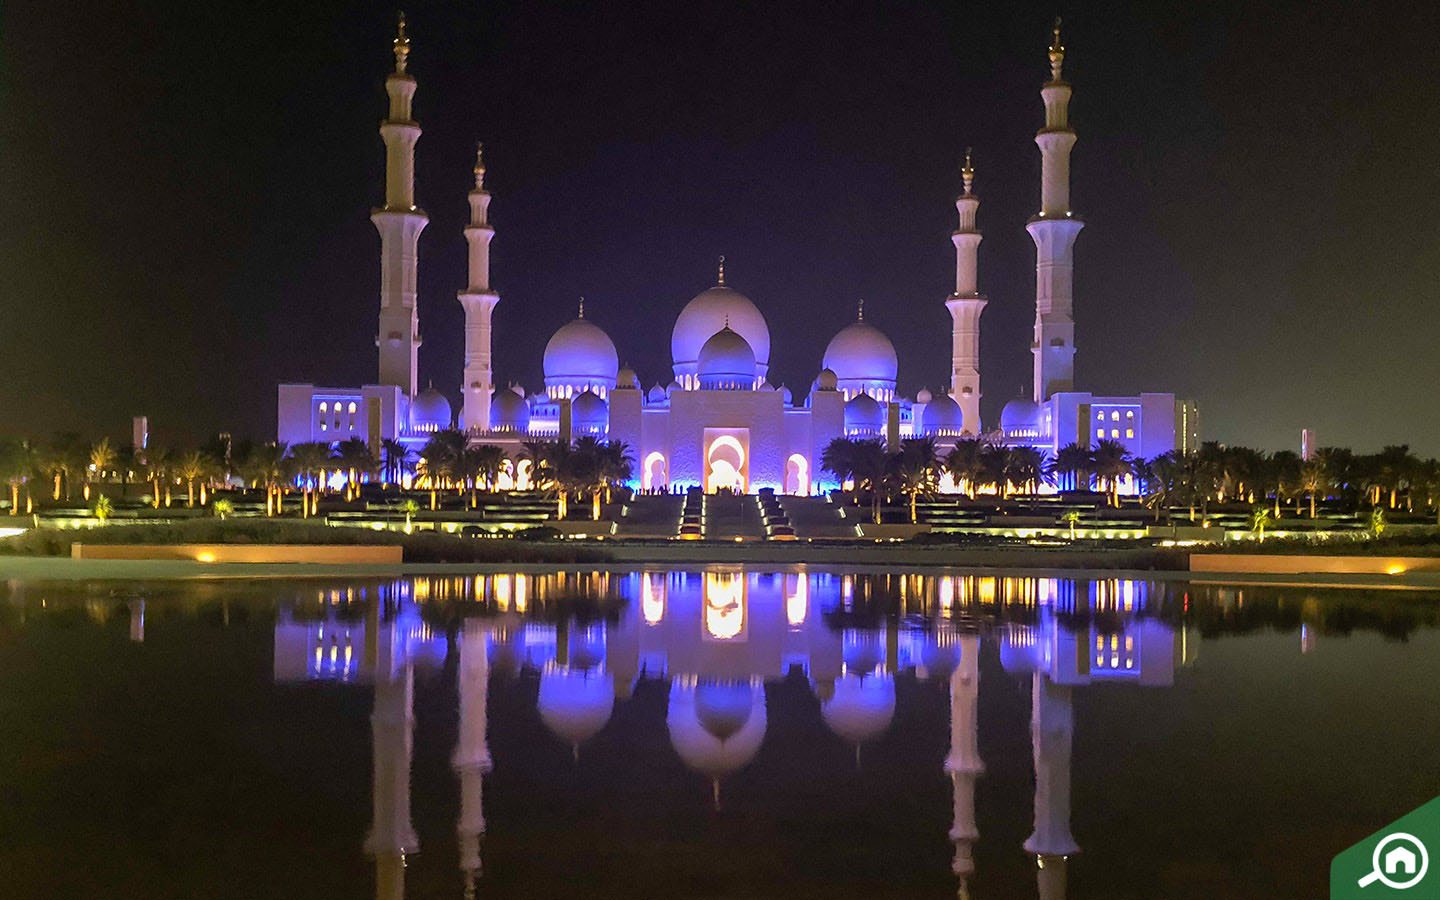 Night view of Sheikh Zayed Grand Mosque